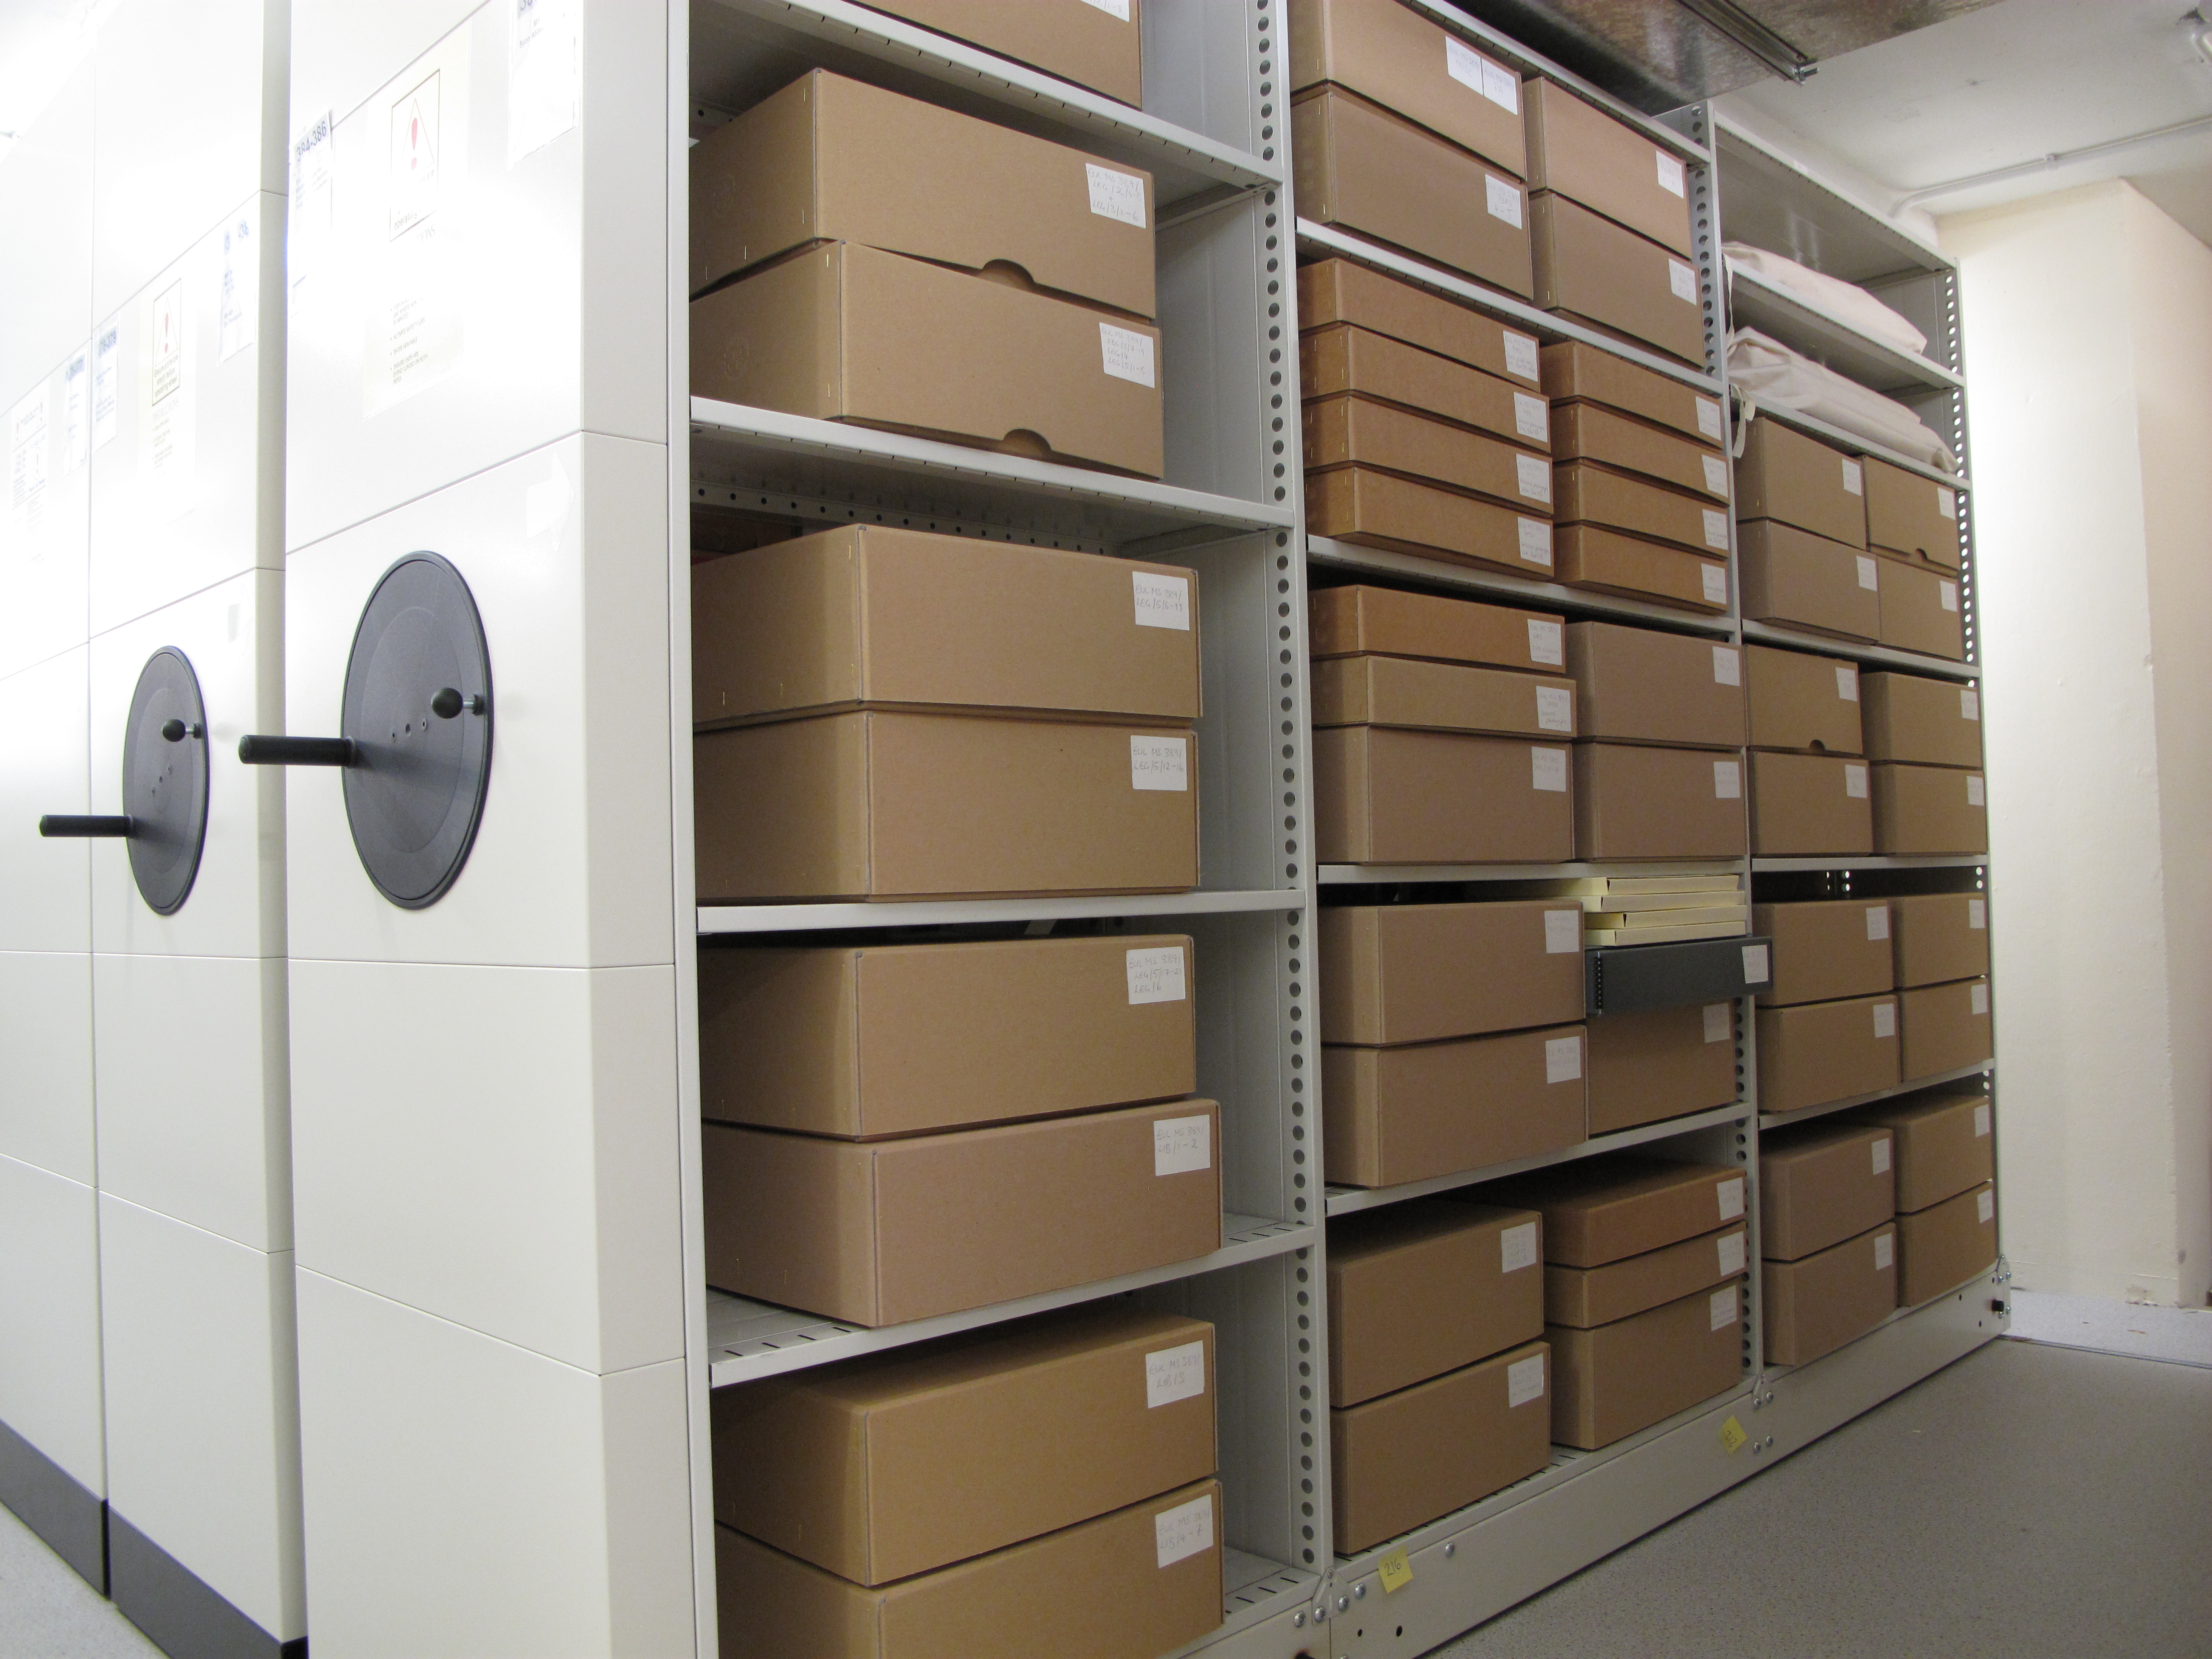 Syon Abbey boxes in the strong room